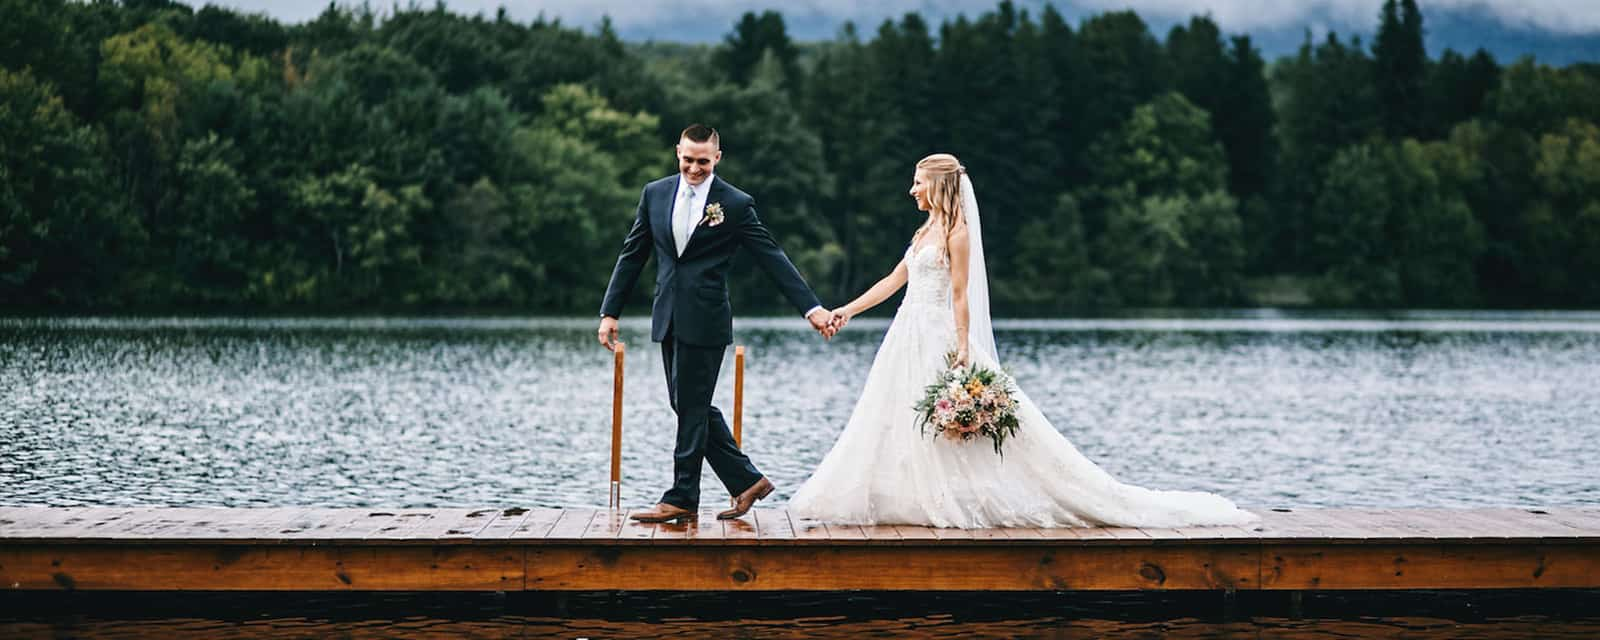 bride and groom holding hands at lake